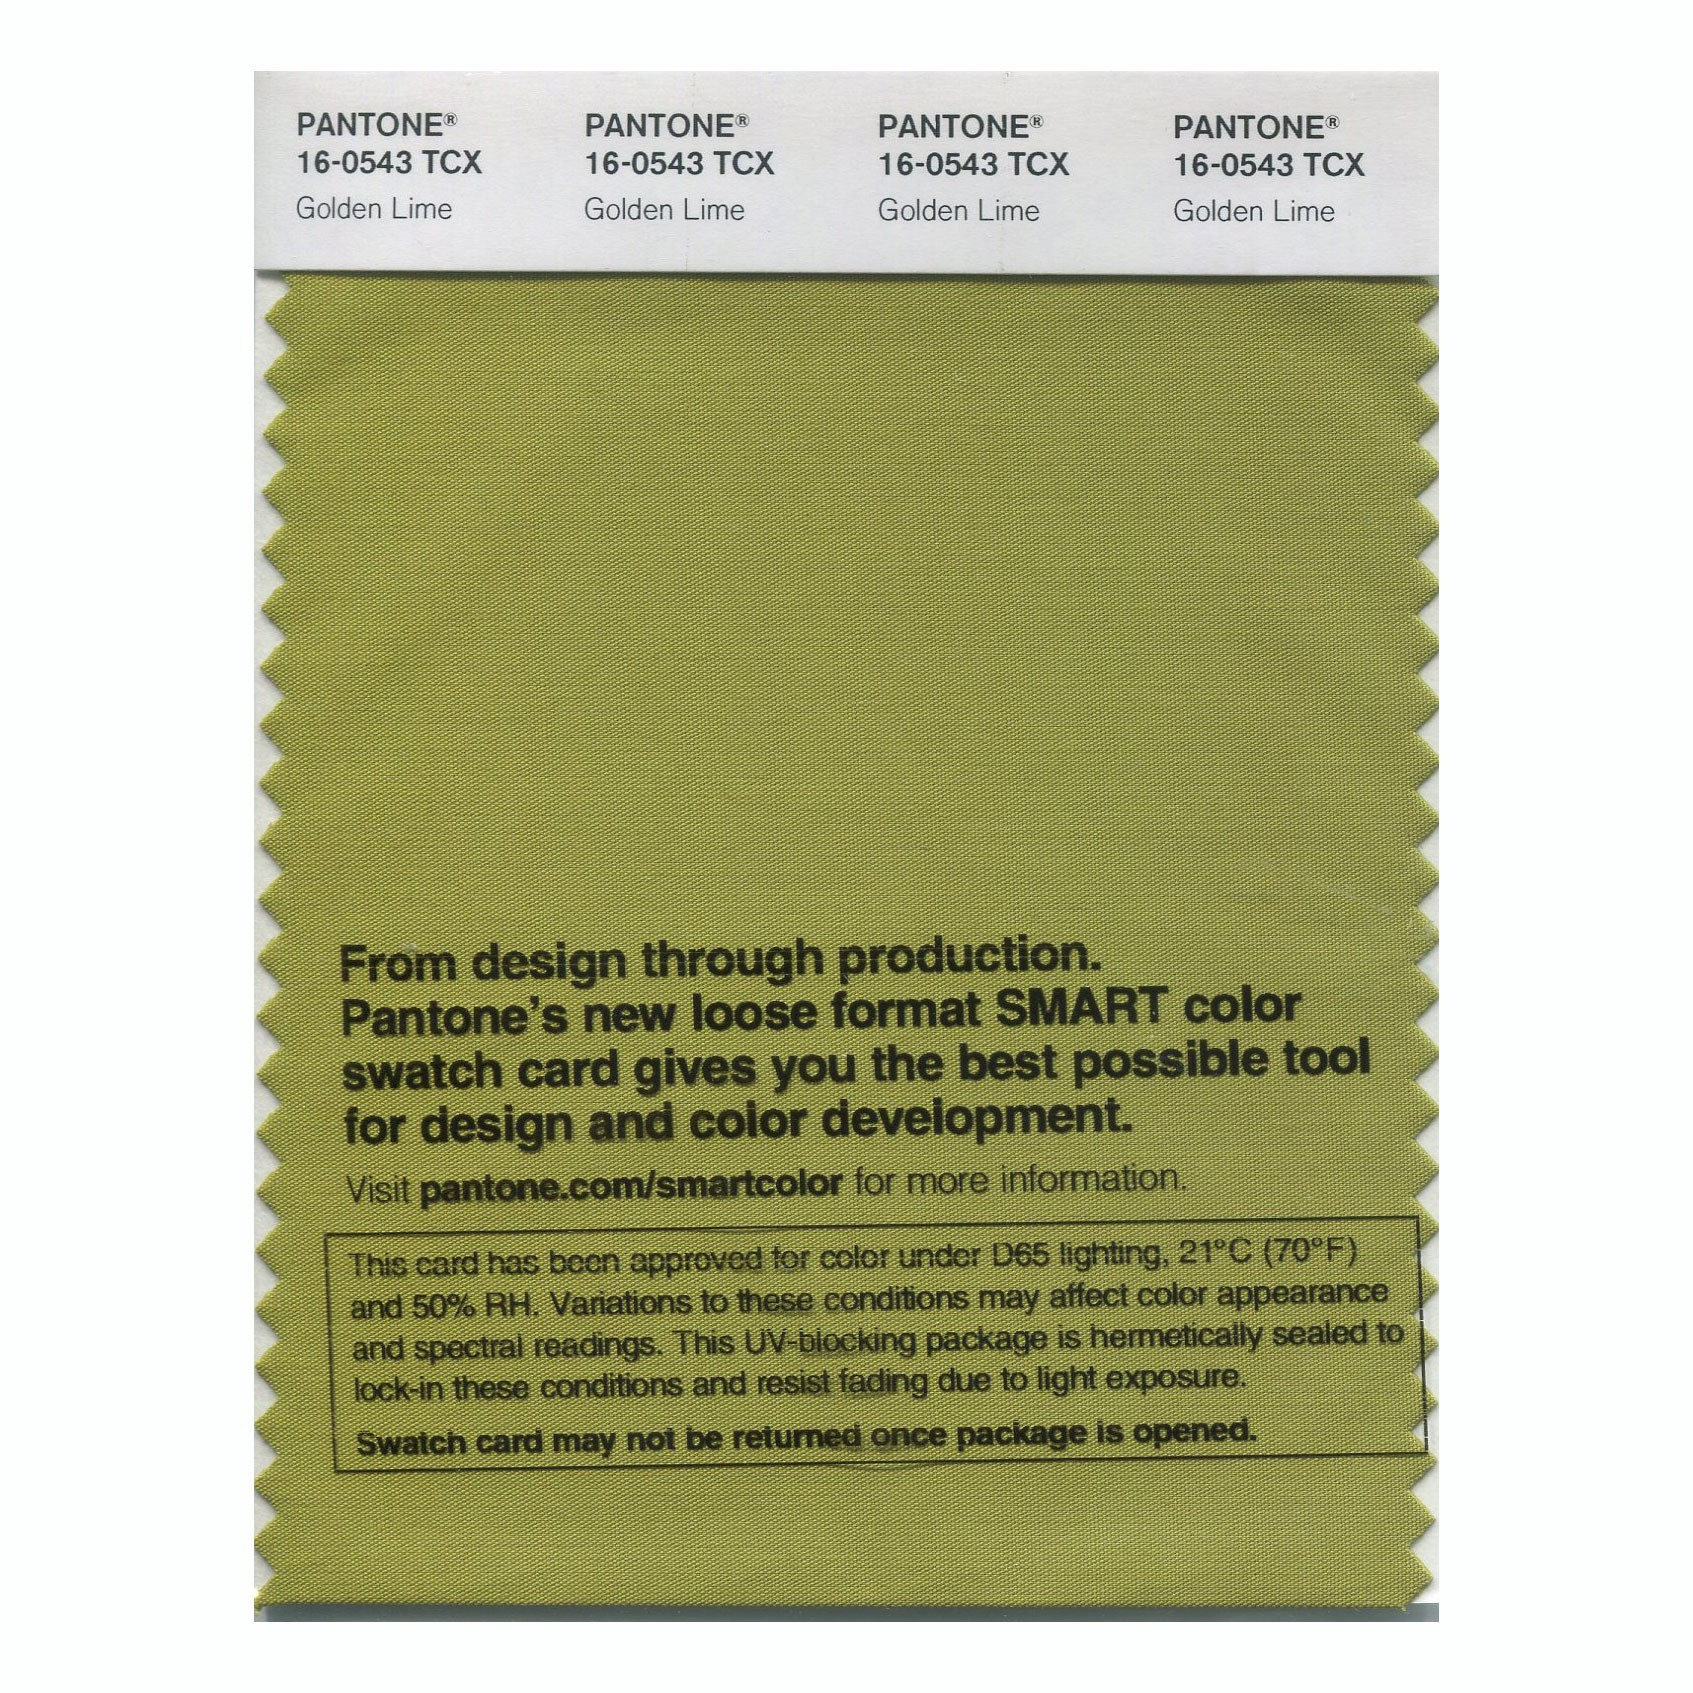 Pantone 16-0543 TCX Swatch Card Golden Lime